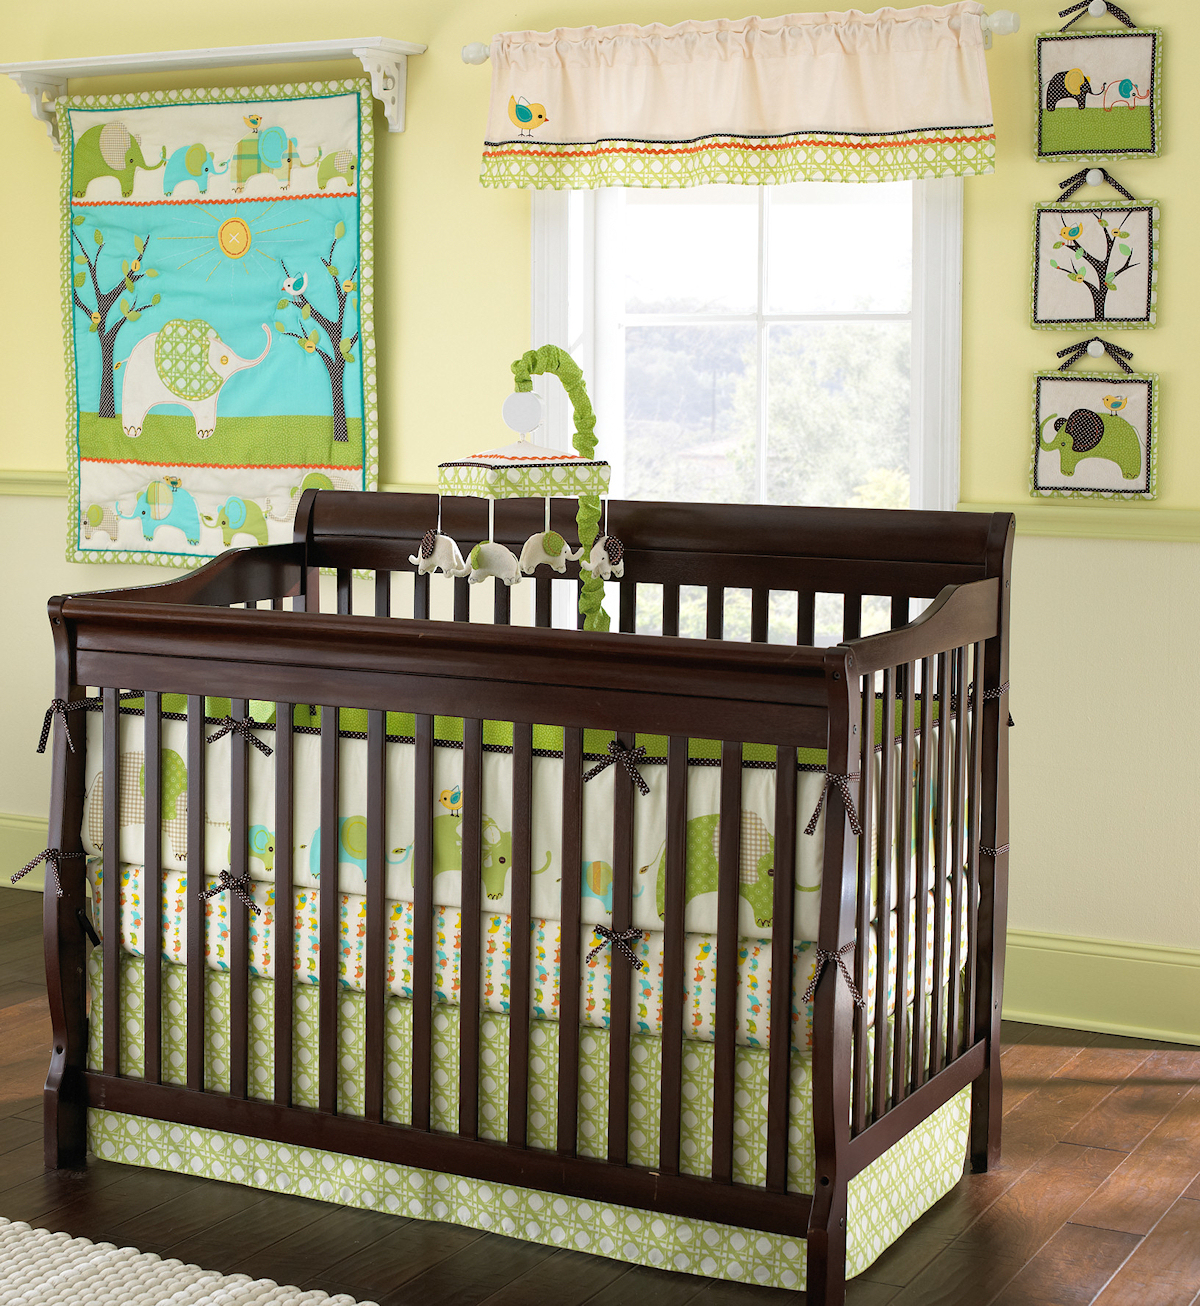 brown wooden crib with green laura ashley bedding on wooden floor for nursery decor ideas